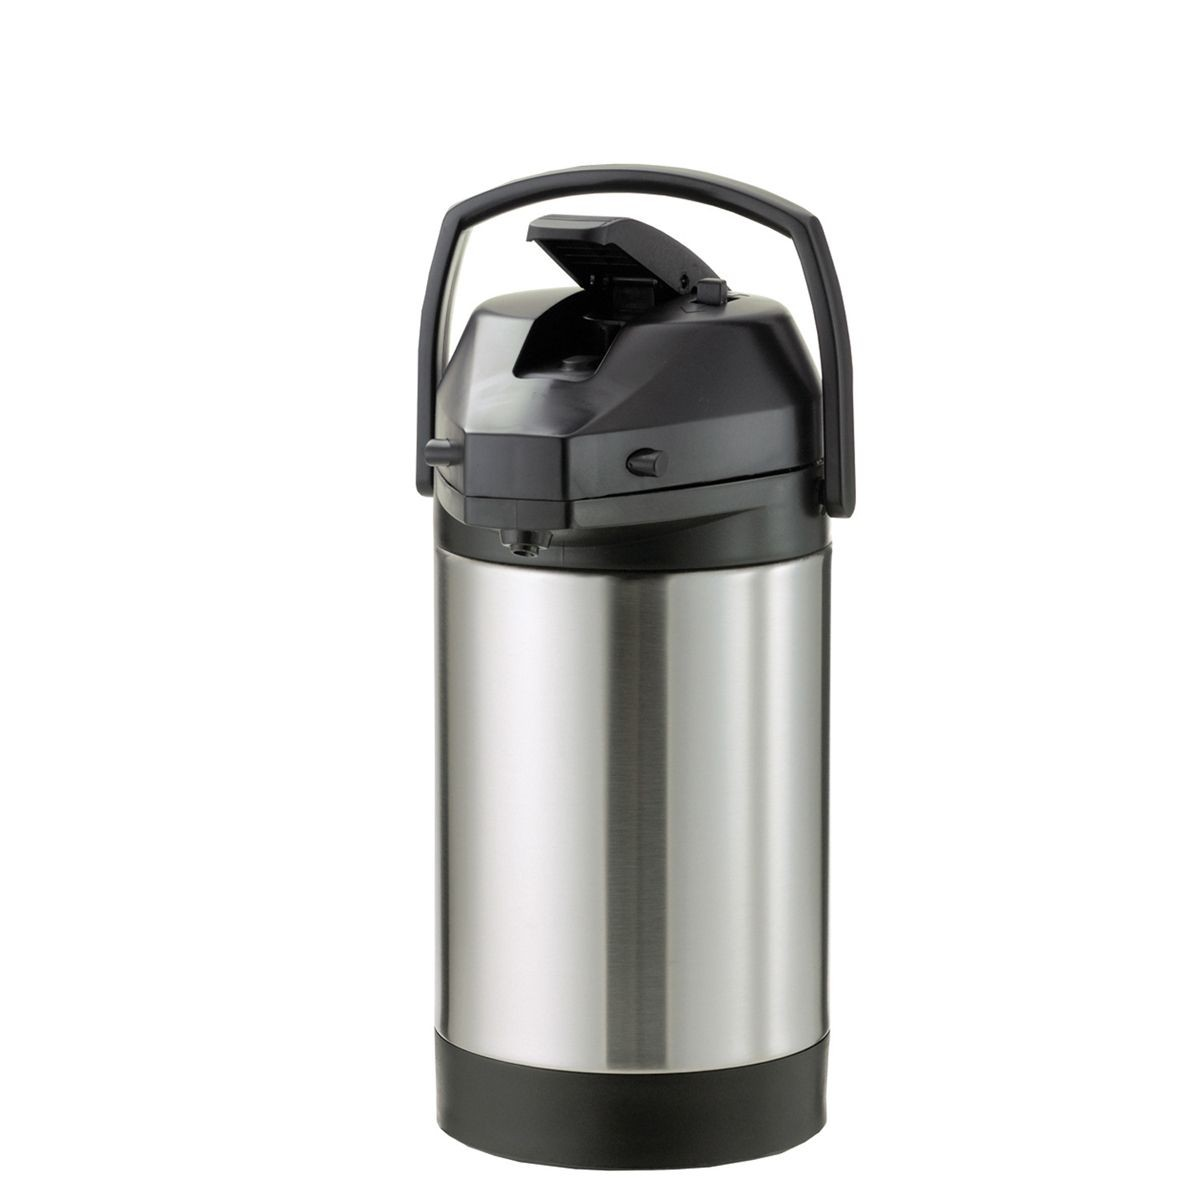 Service Ideas SVAP38CPL Brushed Stainless Airpot with Interchangeable Lever Lid, 3.8 Liter